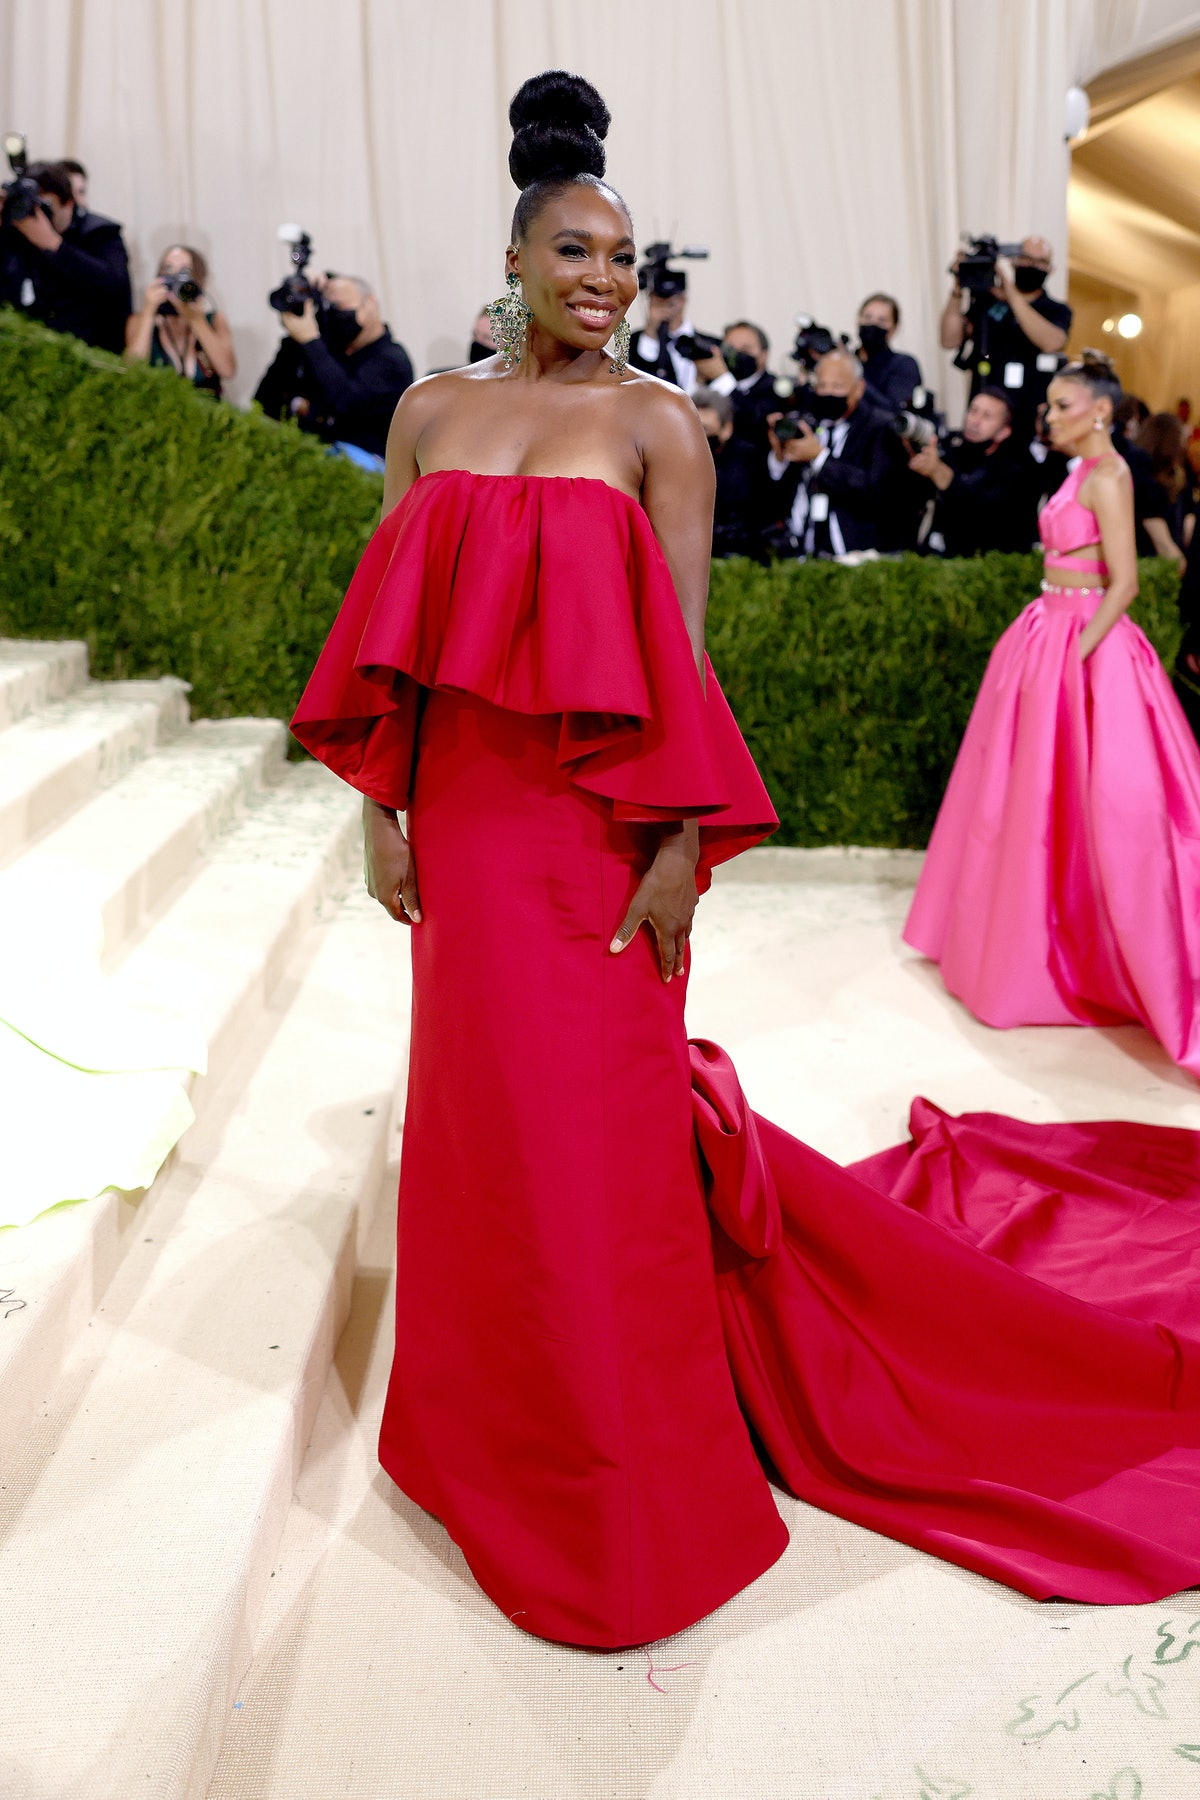 Venus Williams attends The 2021 Met Gala Celebrating In America: A Lexicon Of Fashion at Metropolit...